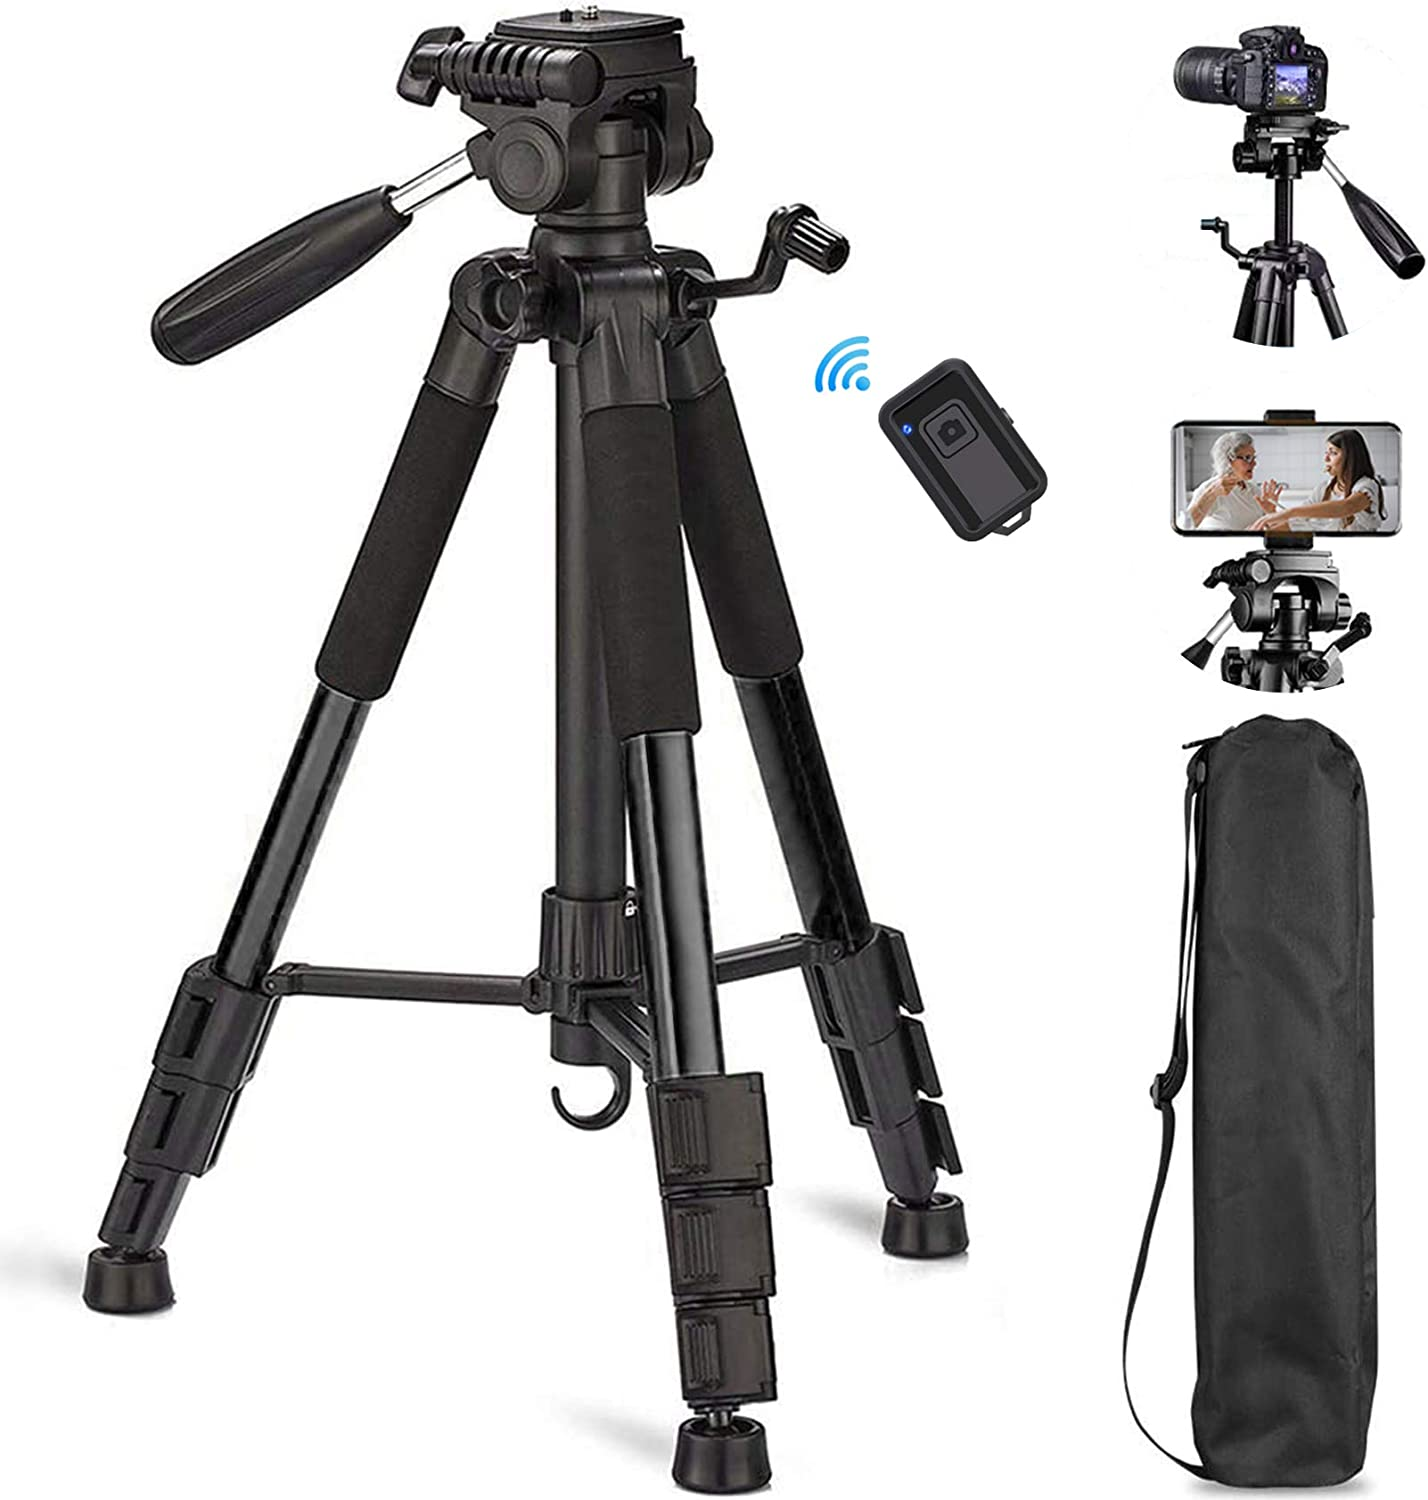 Sumcoo 57 inch Camera Tripod with Carry Bag, Portable Aluminum Travel Tripod with Bluetooth Remote & Universal Phone Mount for DSLR Cameras/Gopro/iPhone/Android Phone